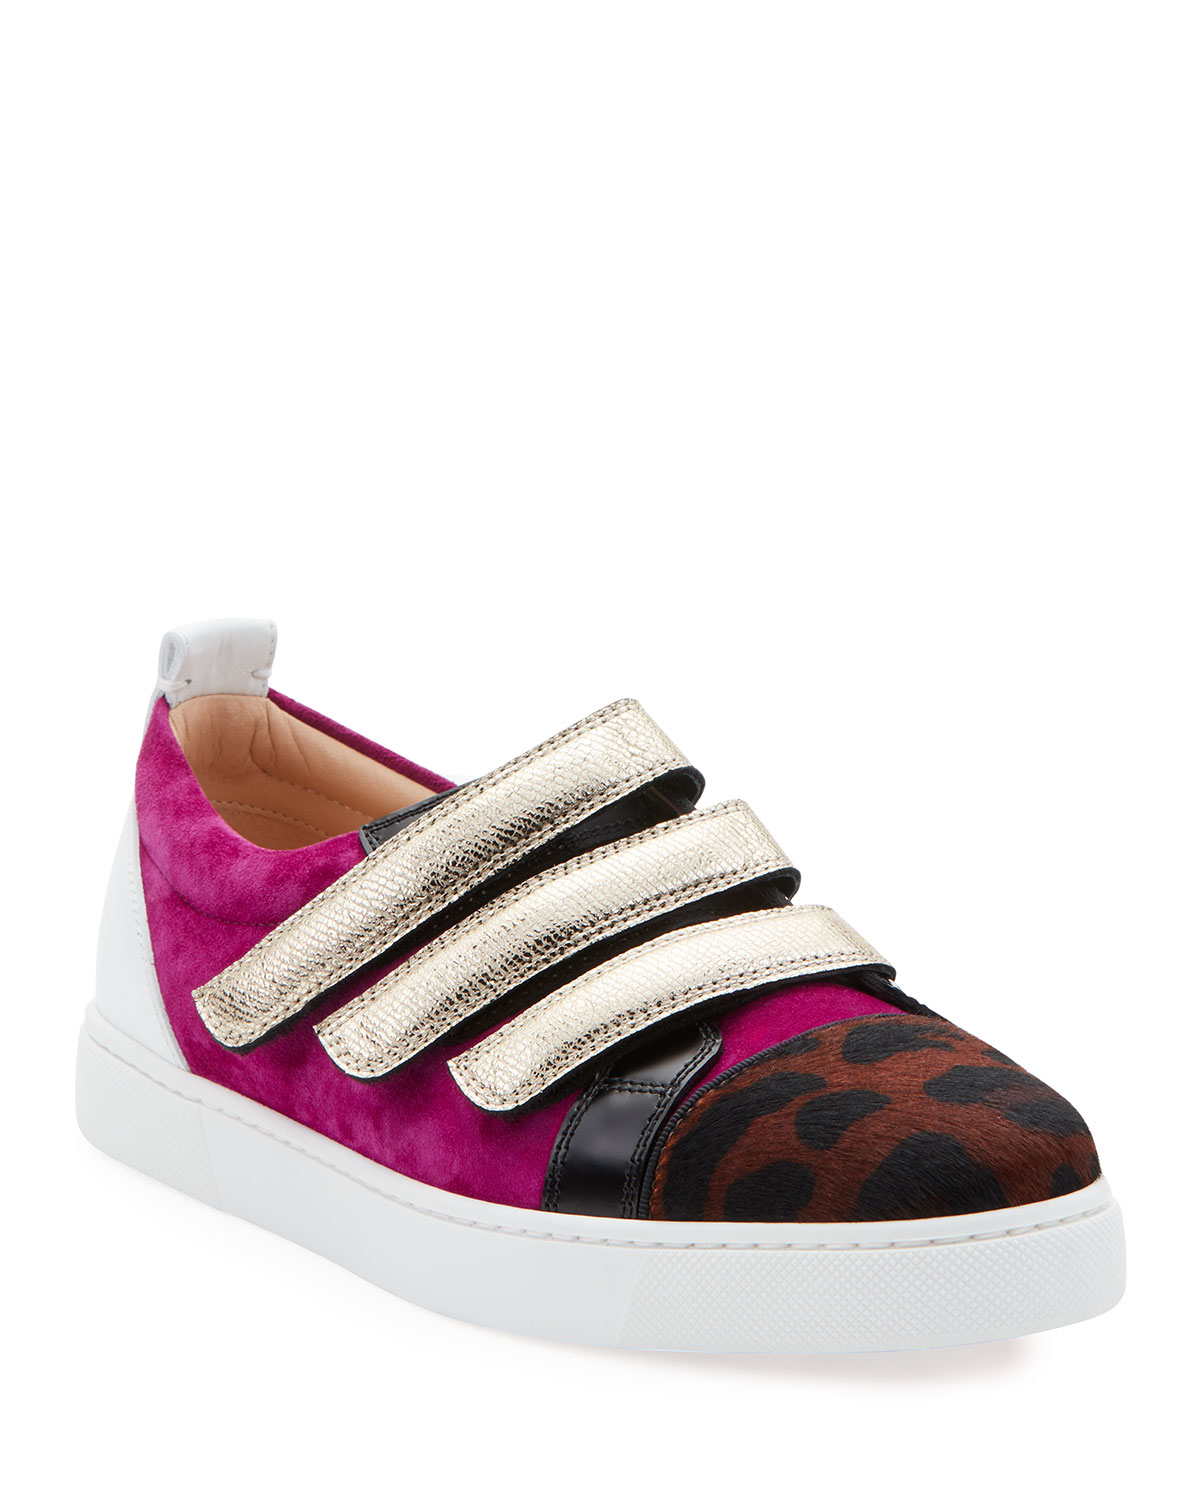 Kiddo Donna Red Sole Sneakers